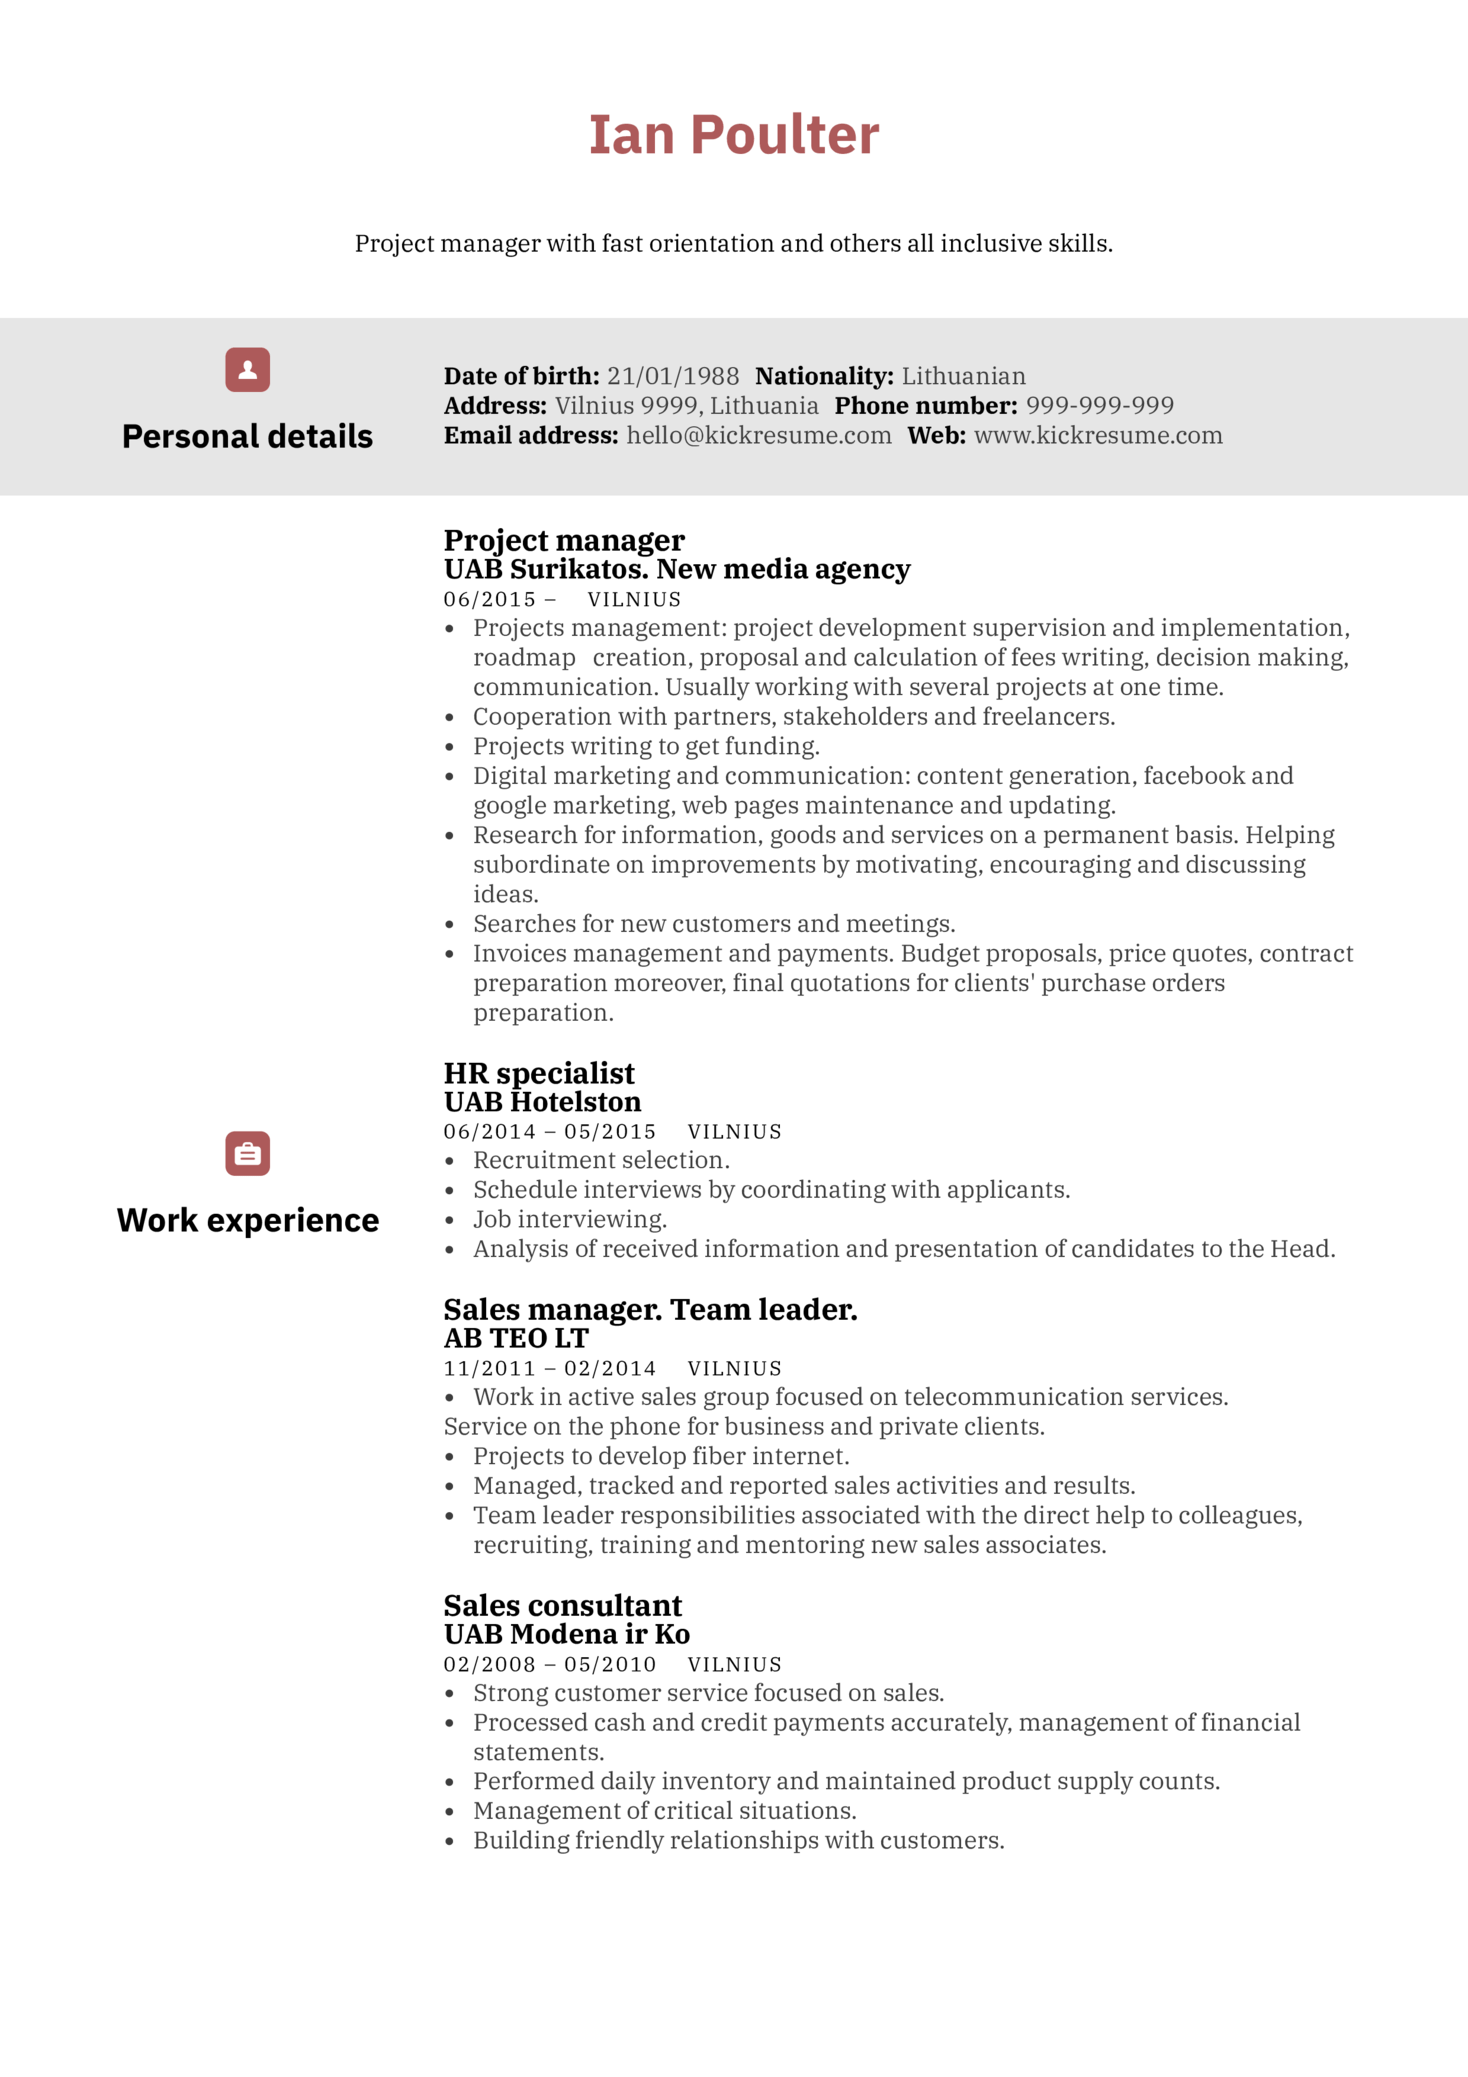 Experienced Project Manager CV Sample (Parte 1)